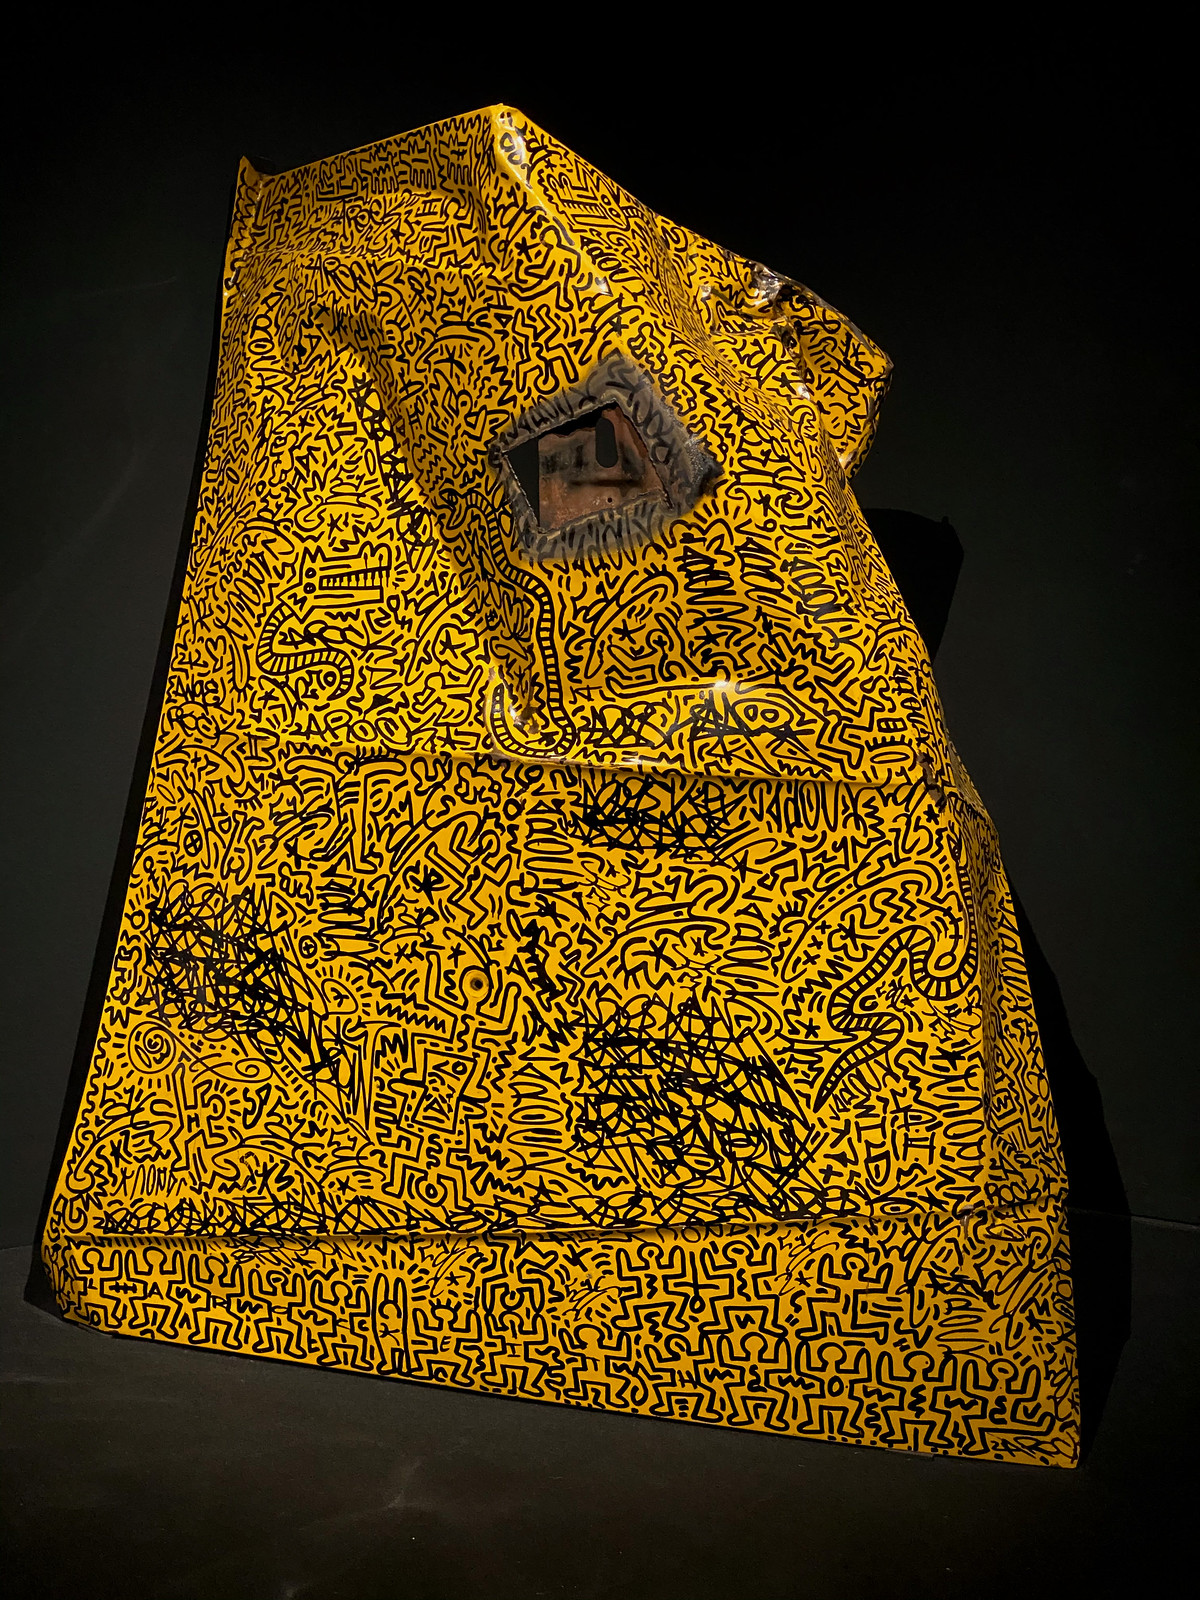 Scrap yellow cab hood by Keith Haring